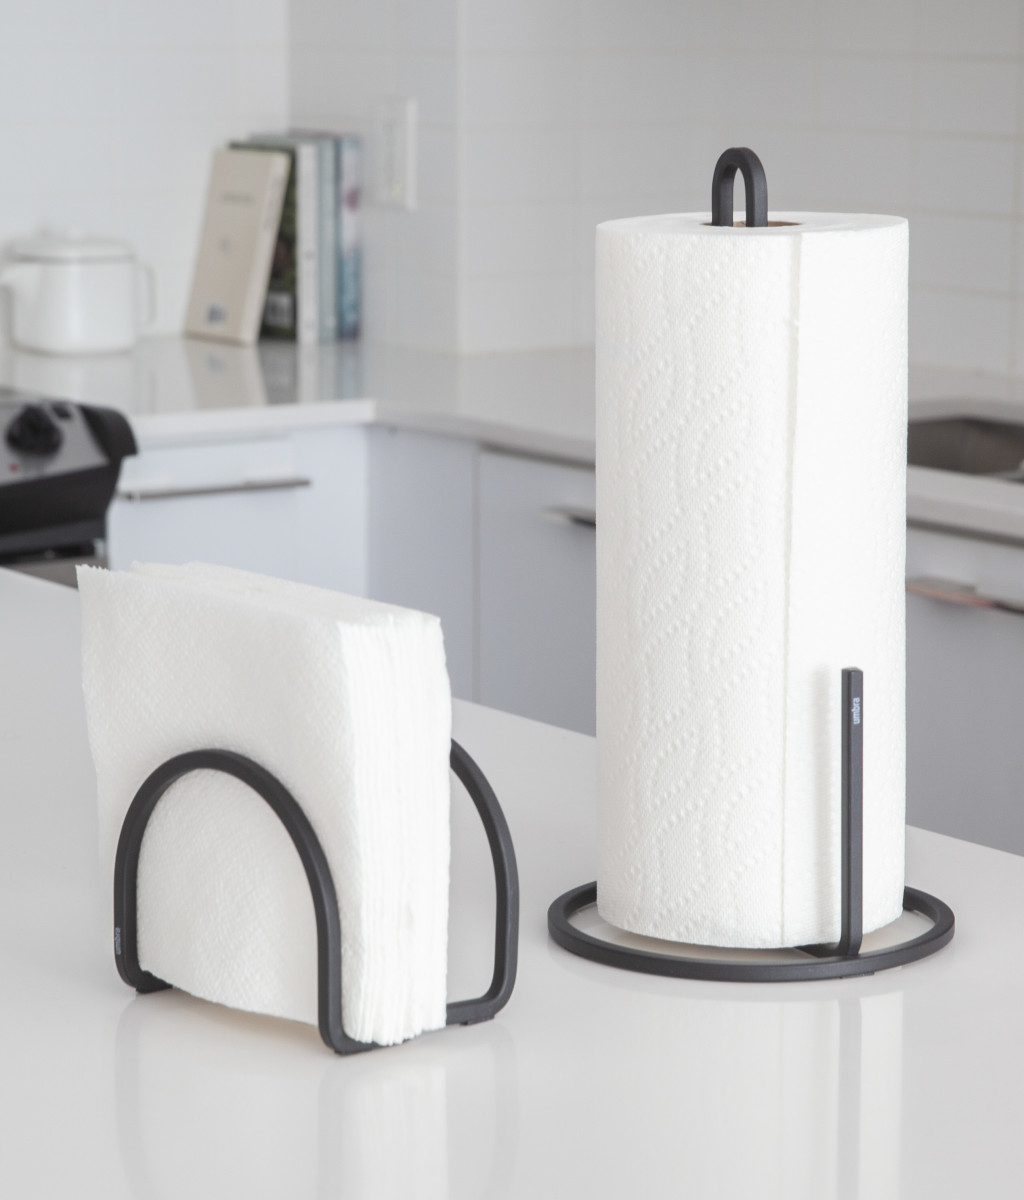 2019_spring_catalog_-_1005748-040-_squire_napkin_holder_black